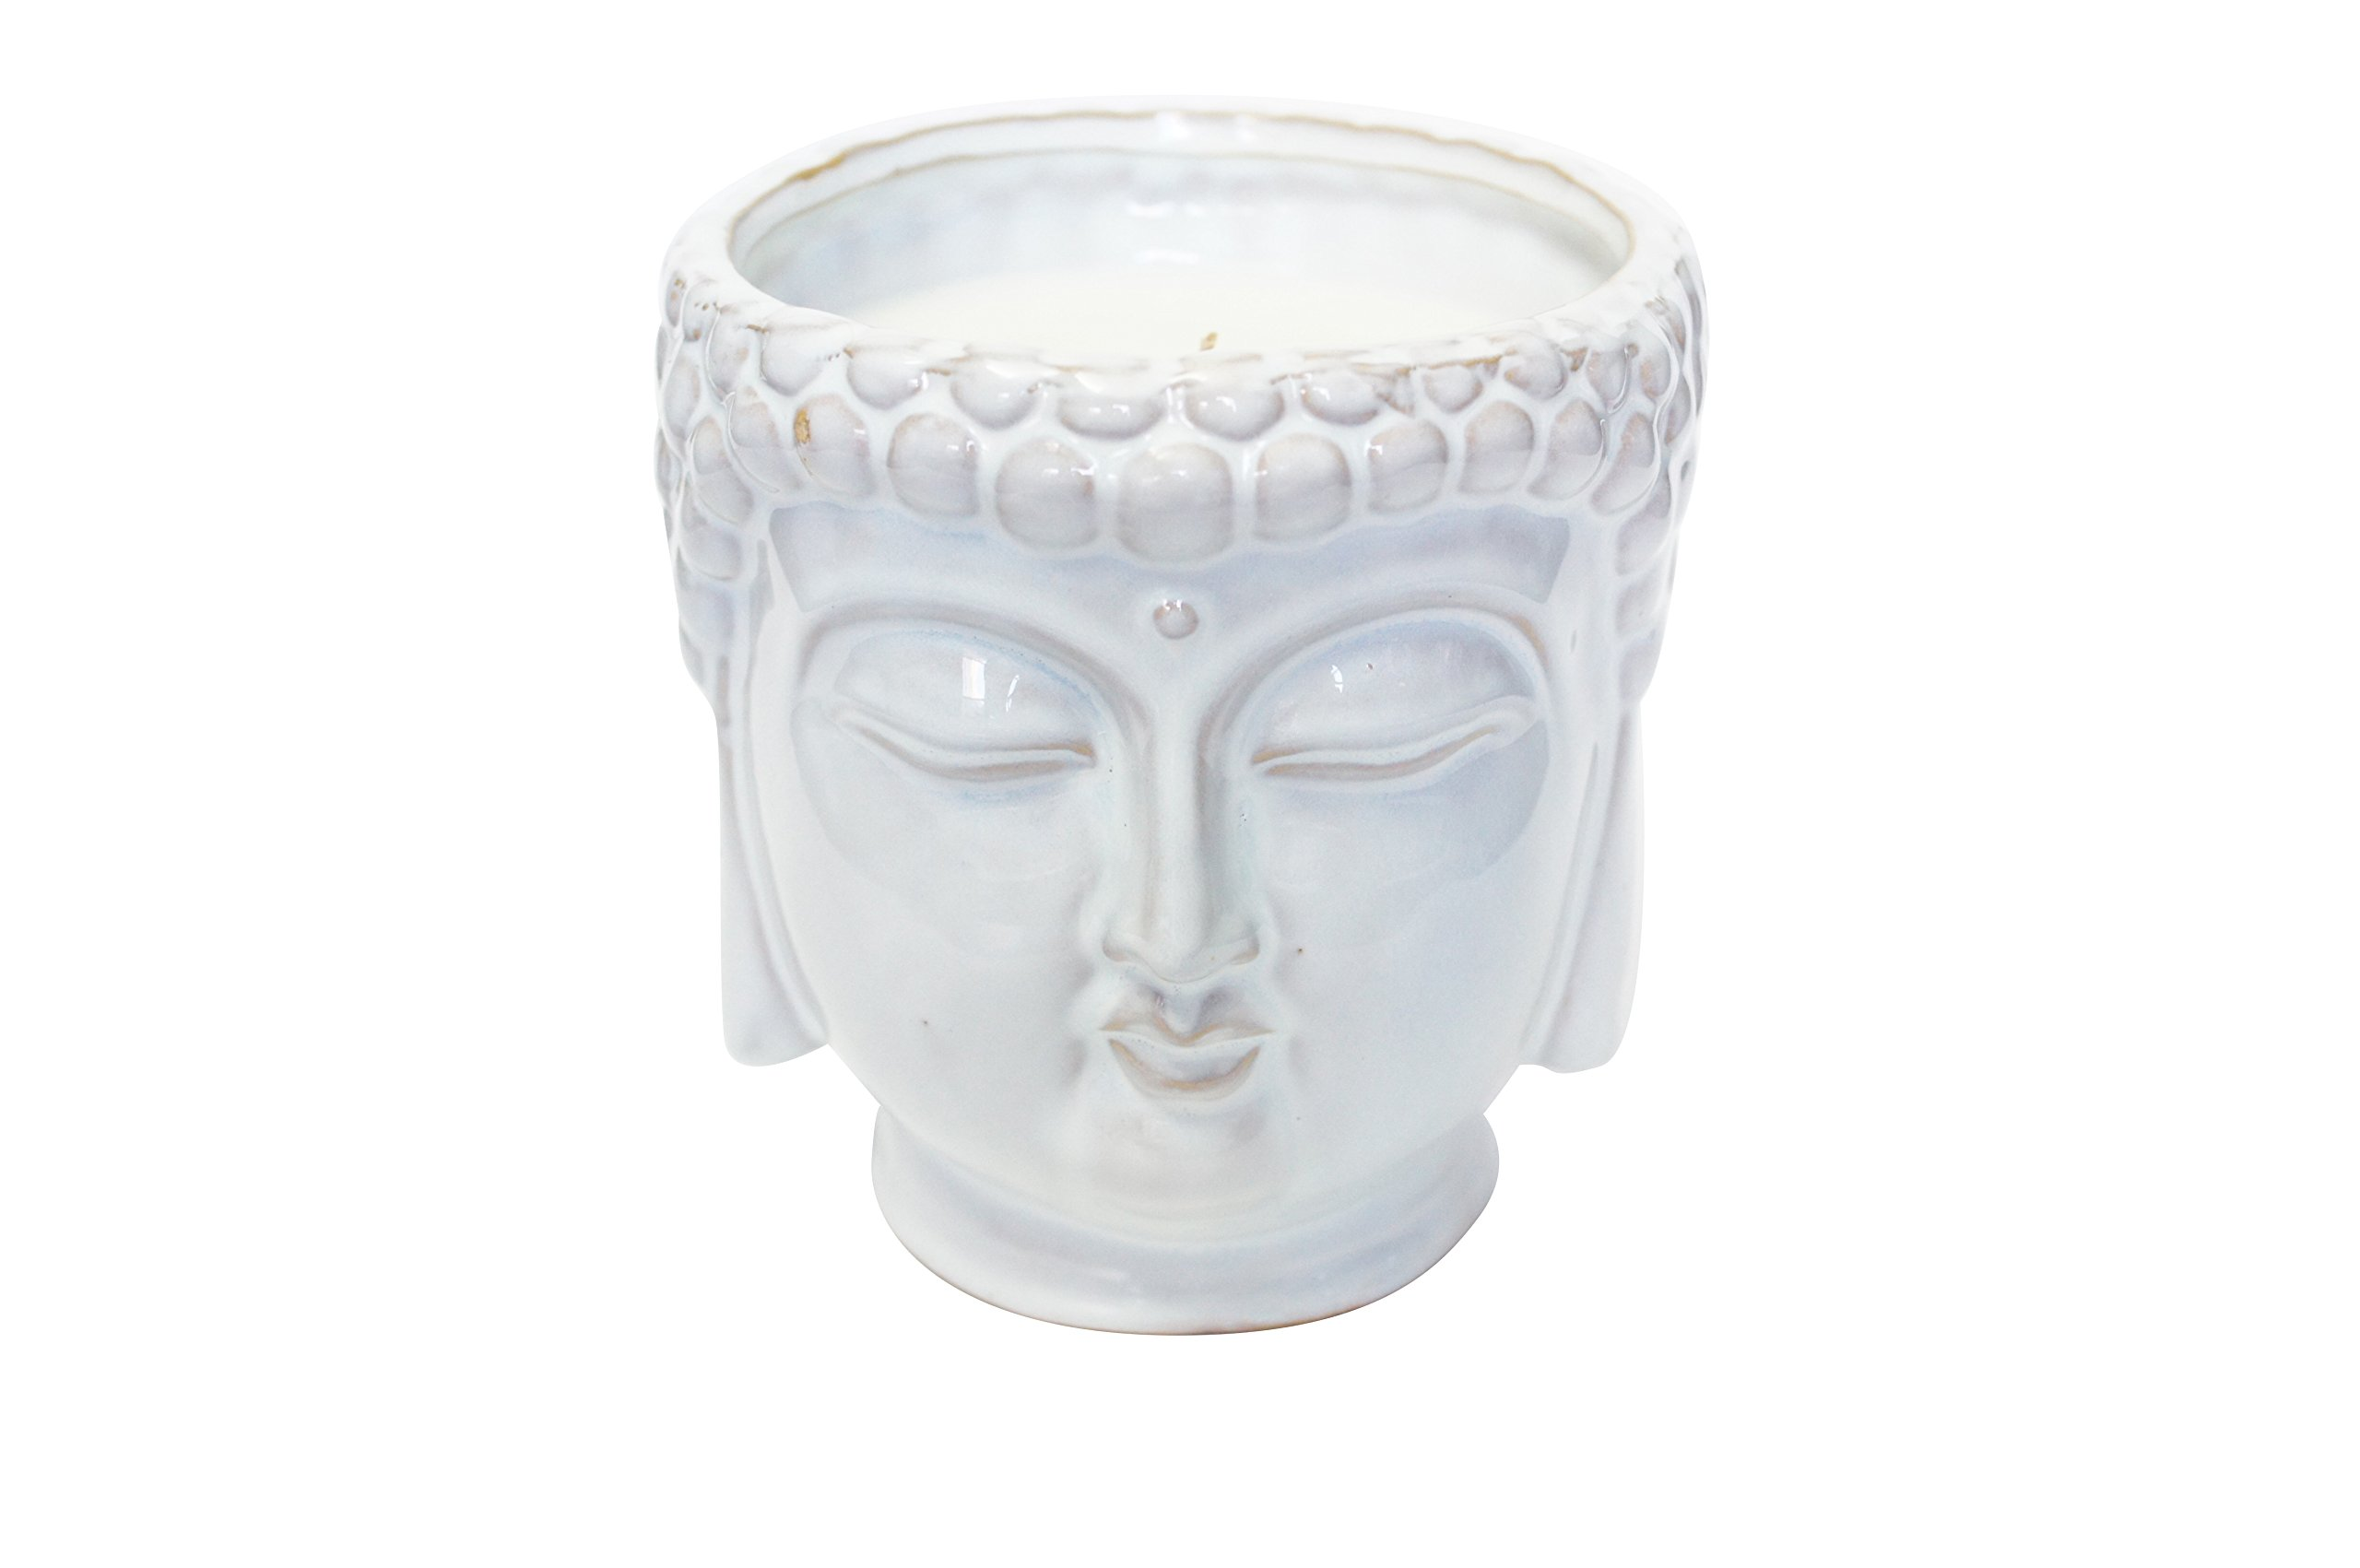 Thompson Ferrier – Buddha scented candle collection – Lotus and lily fragrance Home Decor Candle - White - Hand sculpted and hand poured with the finest essential oils